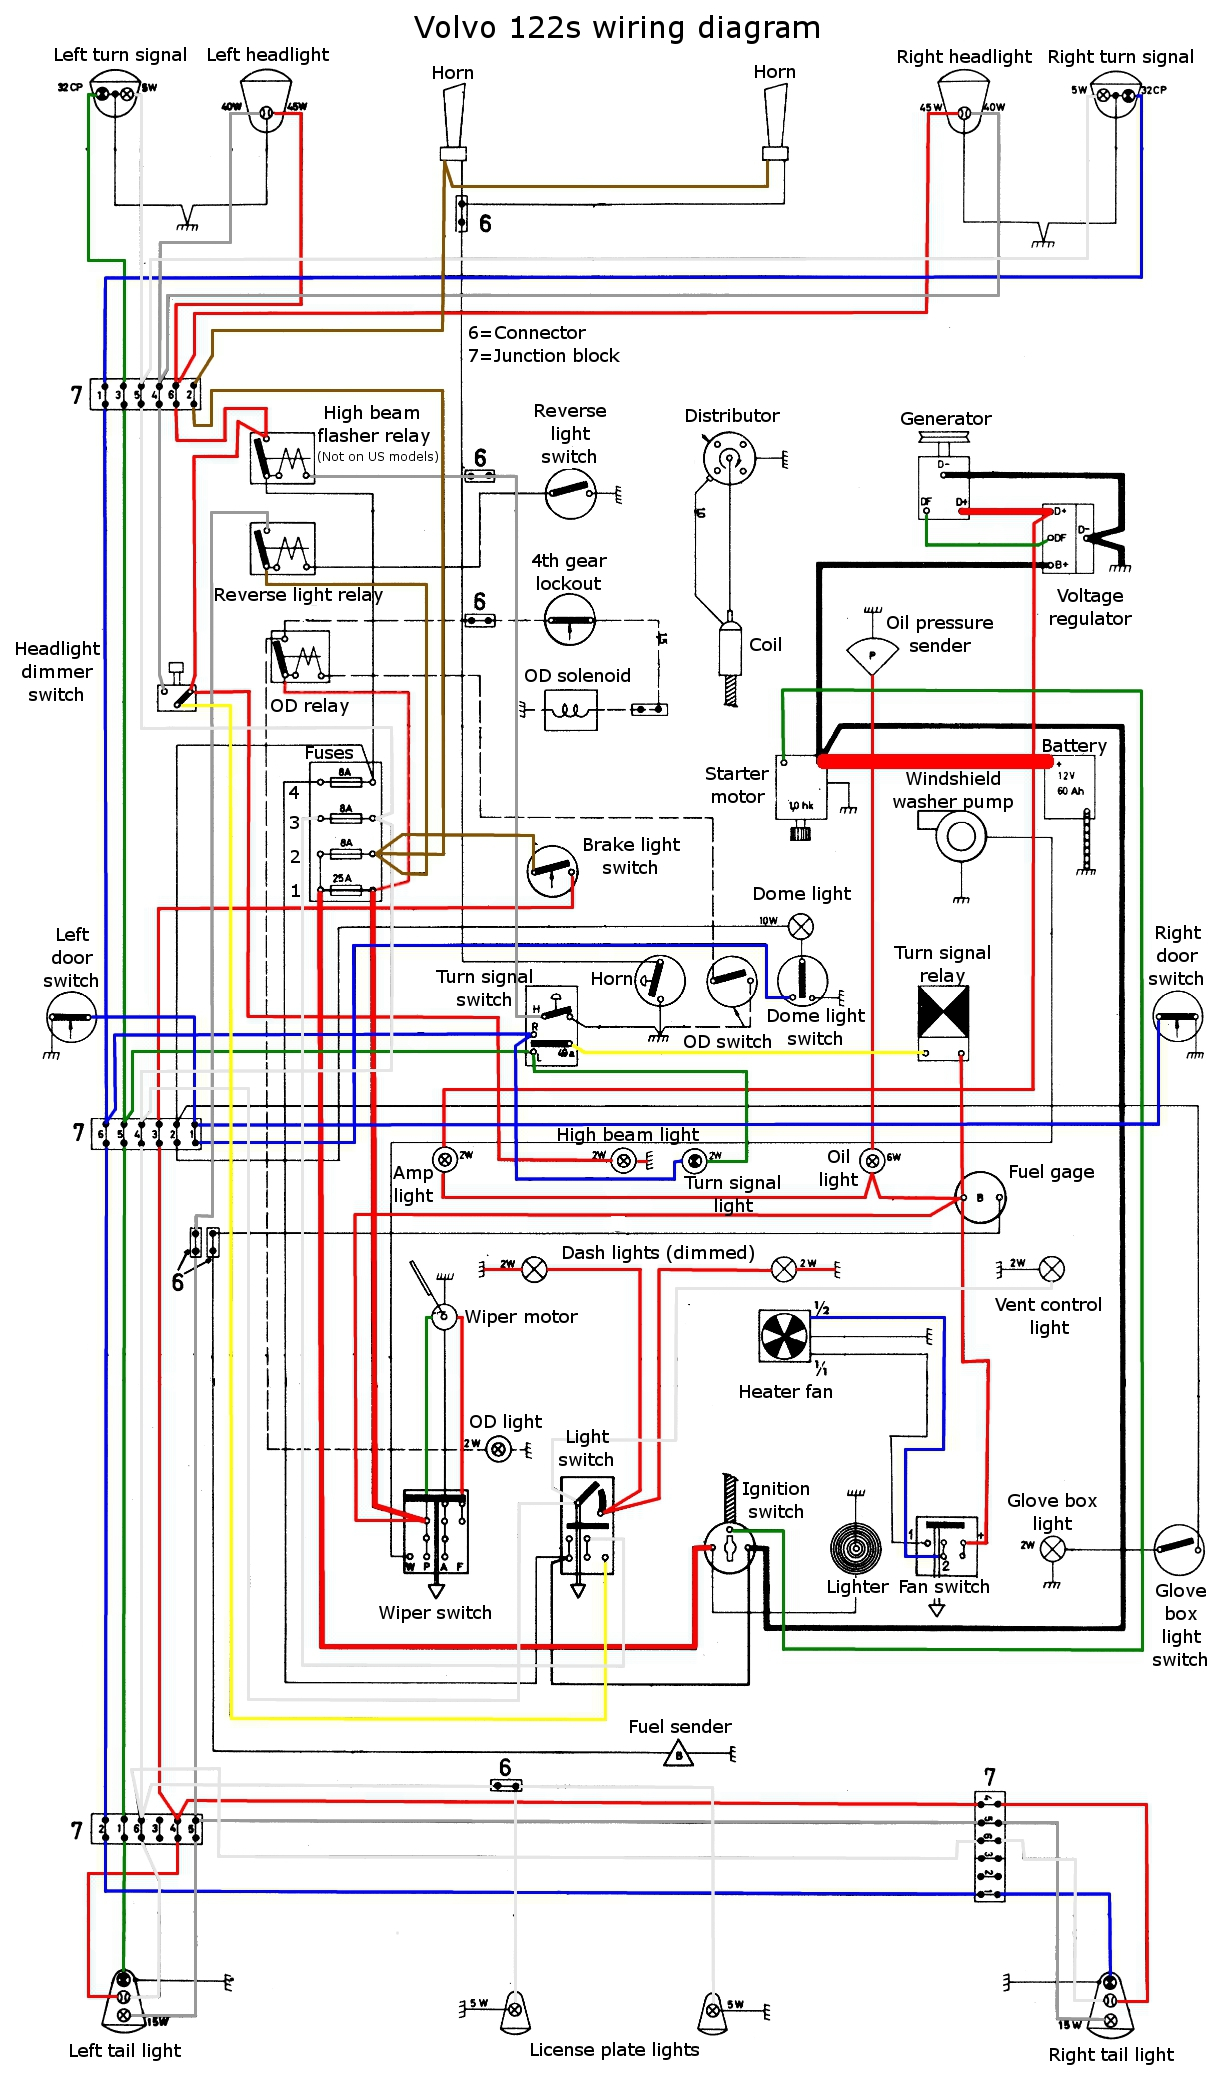 122 wiring diagram color wiring gremlins Volvo Wiring Harness Problems at gsmx.co